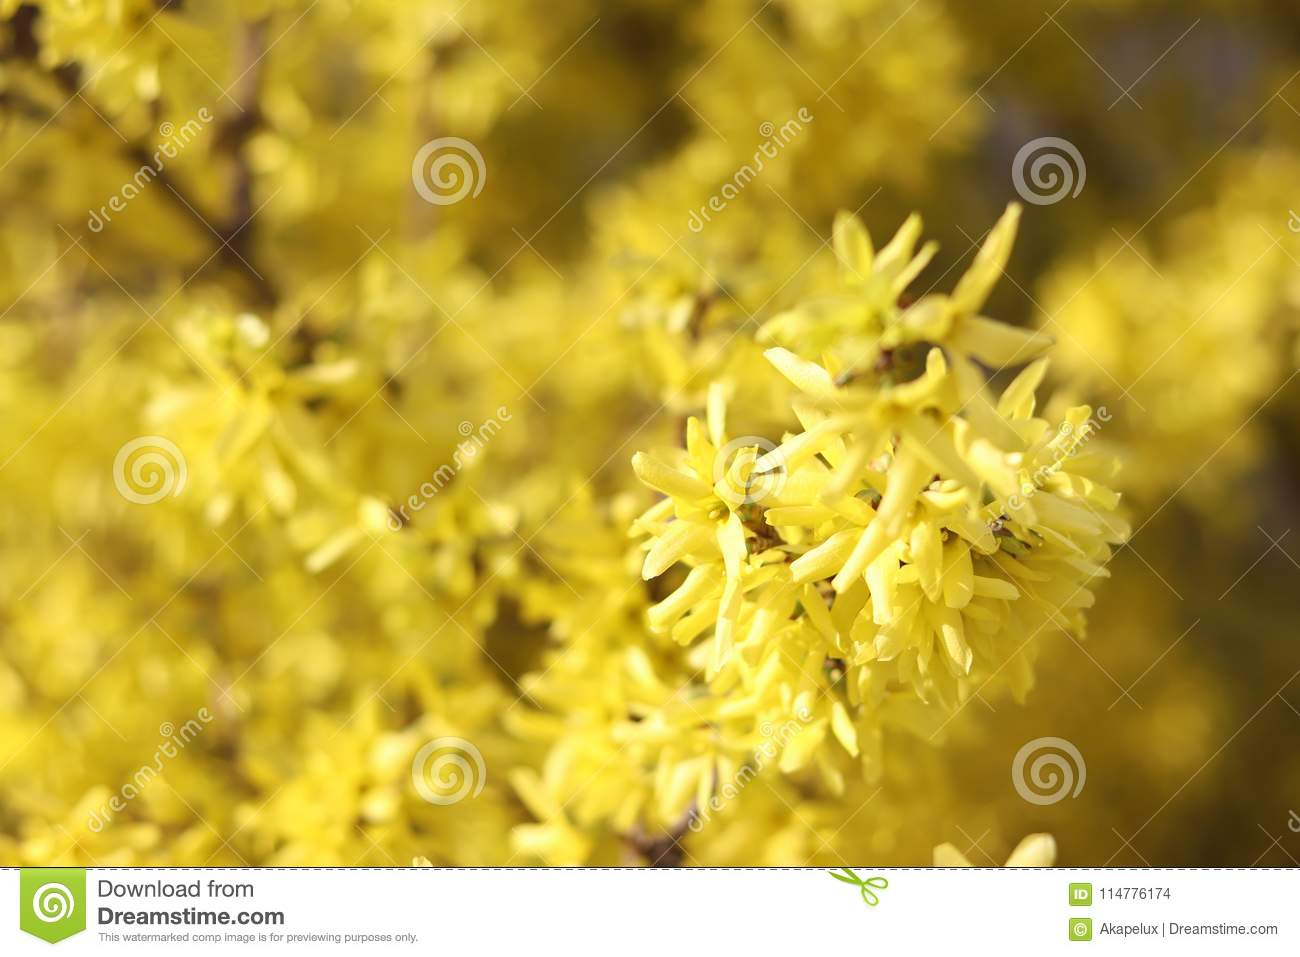 The spring bush is forsythia yellow flowers in sunlight a good mood download the spring bush is forsythia yellow flowers in sunlight a good mood european mightylinksfo